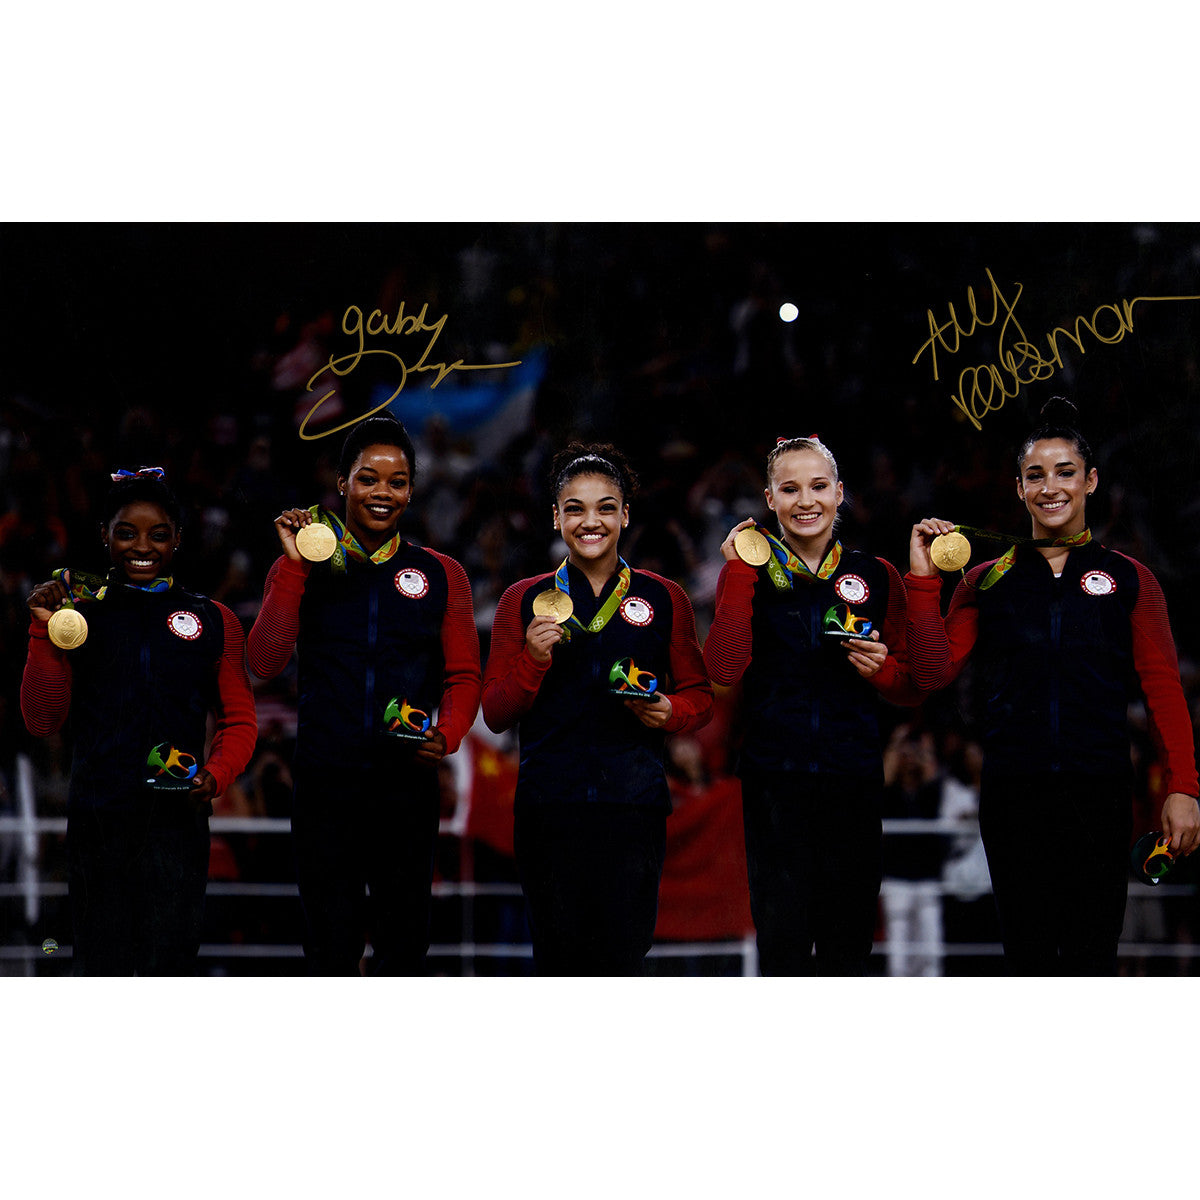 Aly Raisman/Gabby Douglas Dual Signed 2016 Medal Stand 20x32 Photo They have won a combined 6 Olympic Gold Medals and now you can add them to your collection. ̴Ì_Olympian Gymnasts Aly Raisman & Gaby Douglas have dual-signed this 20x32 picture of them standing with their 2016 USA Olympic team after capturing the Go